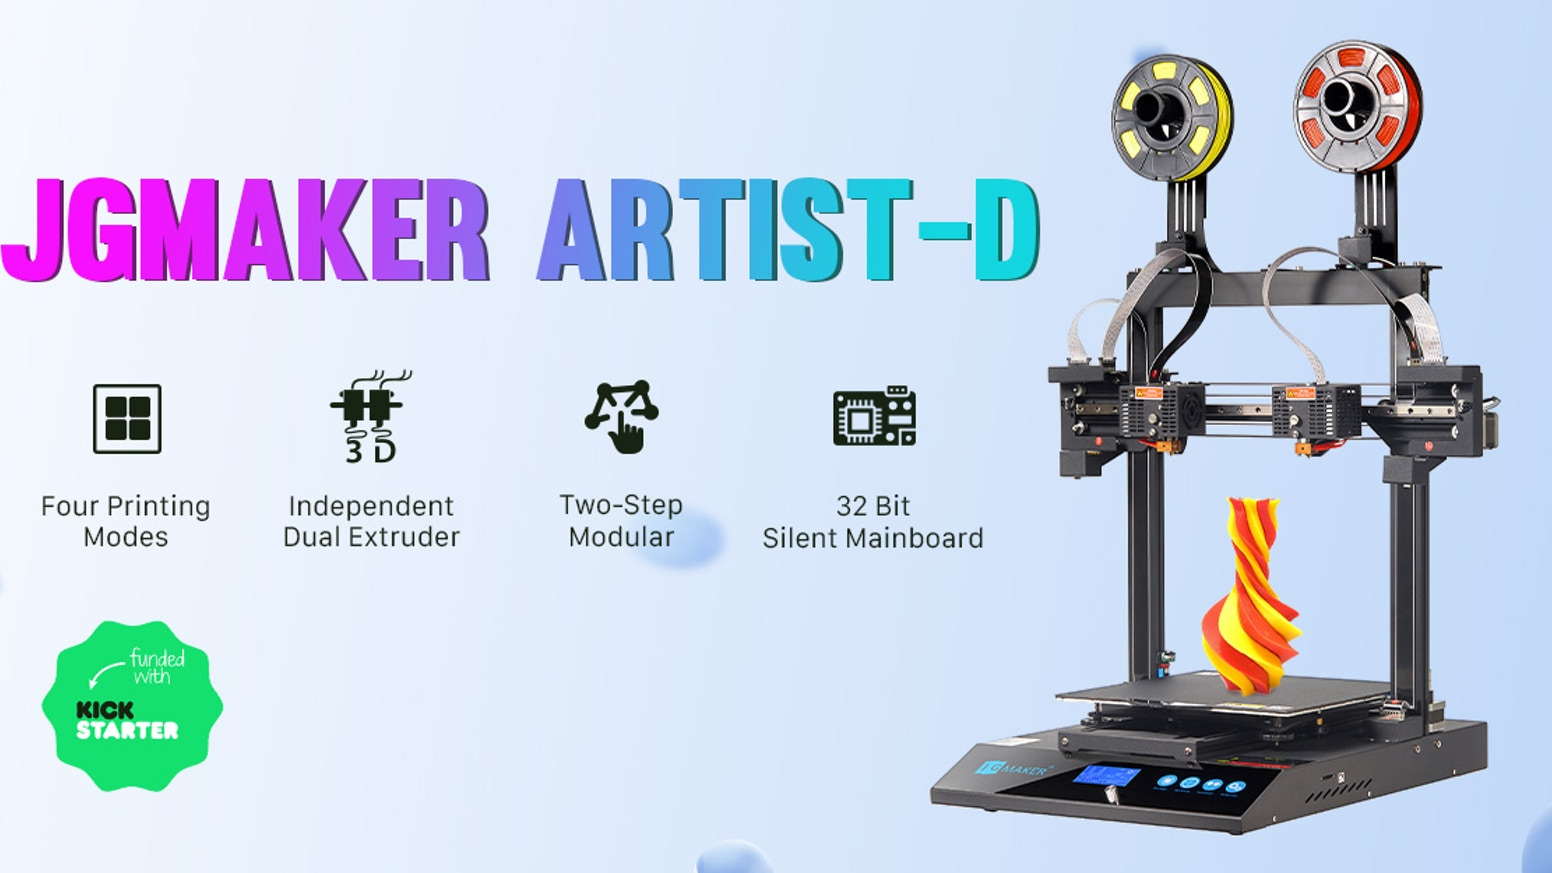 Dual extruder Independent direct drive 3D printing featuring great performance and robust construction.